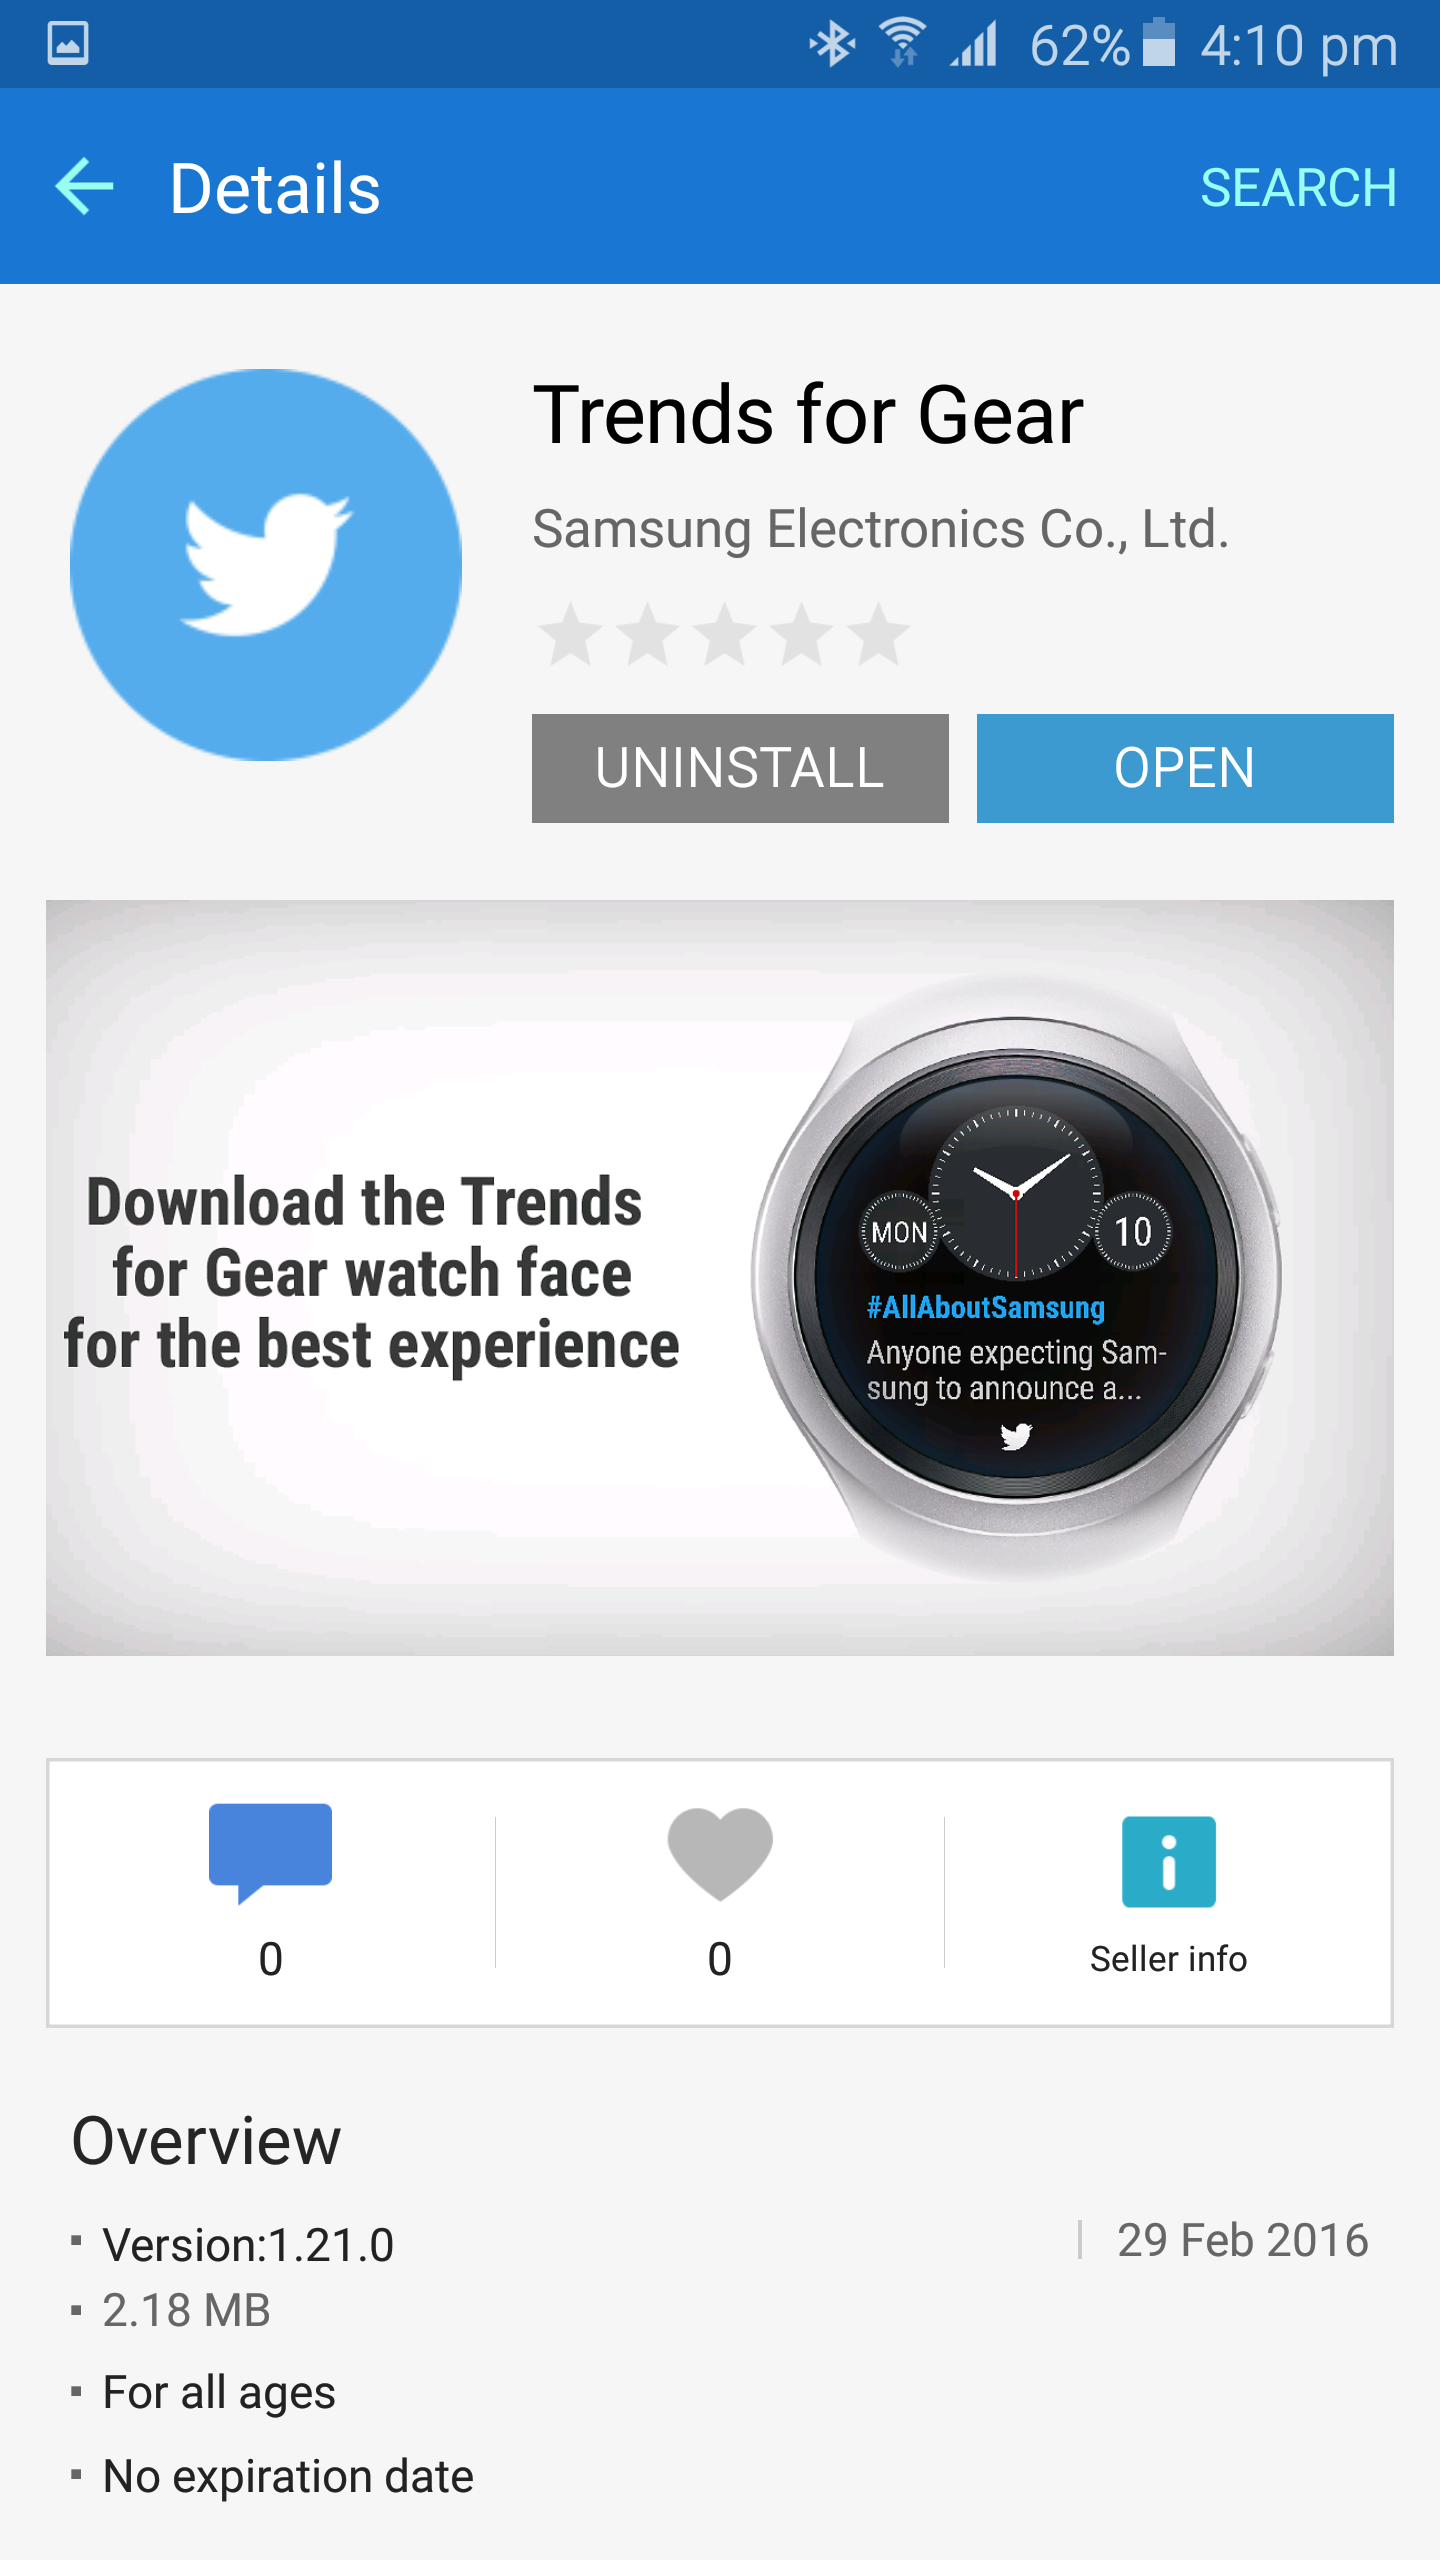 Samsung brings Twitter trends to your wrist with new watch